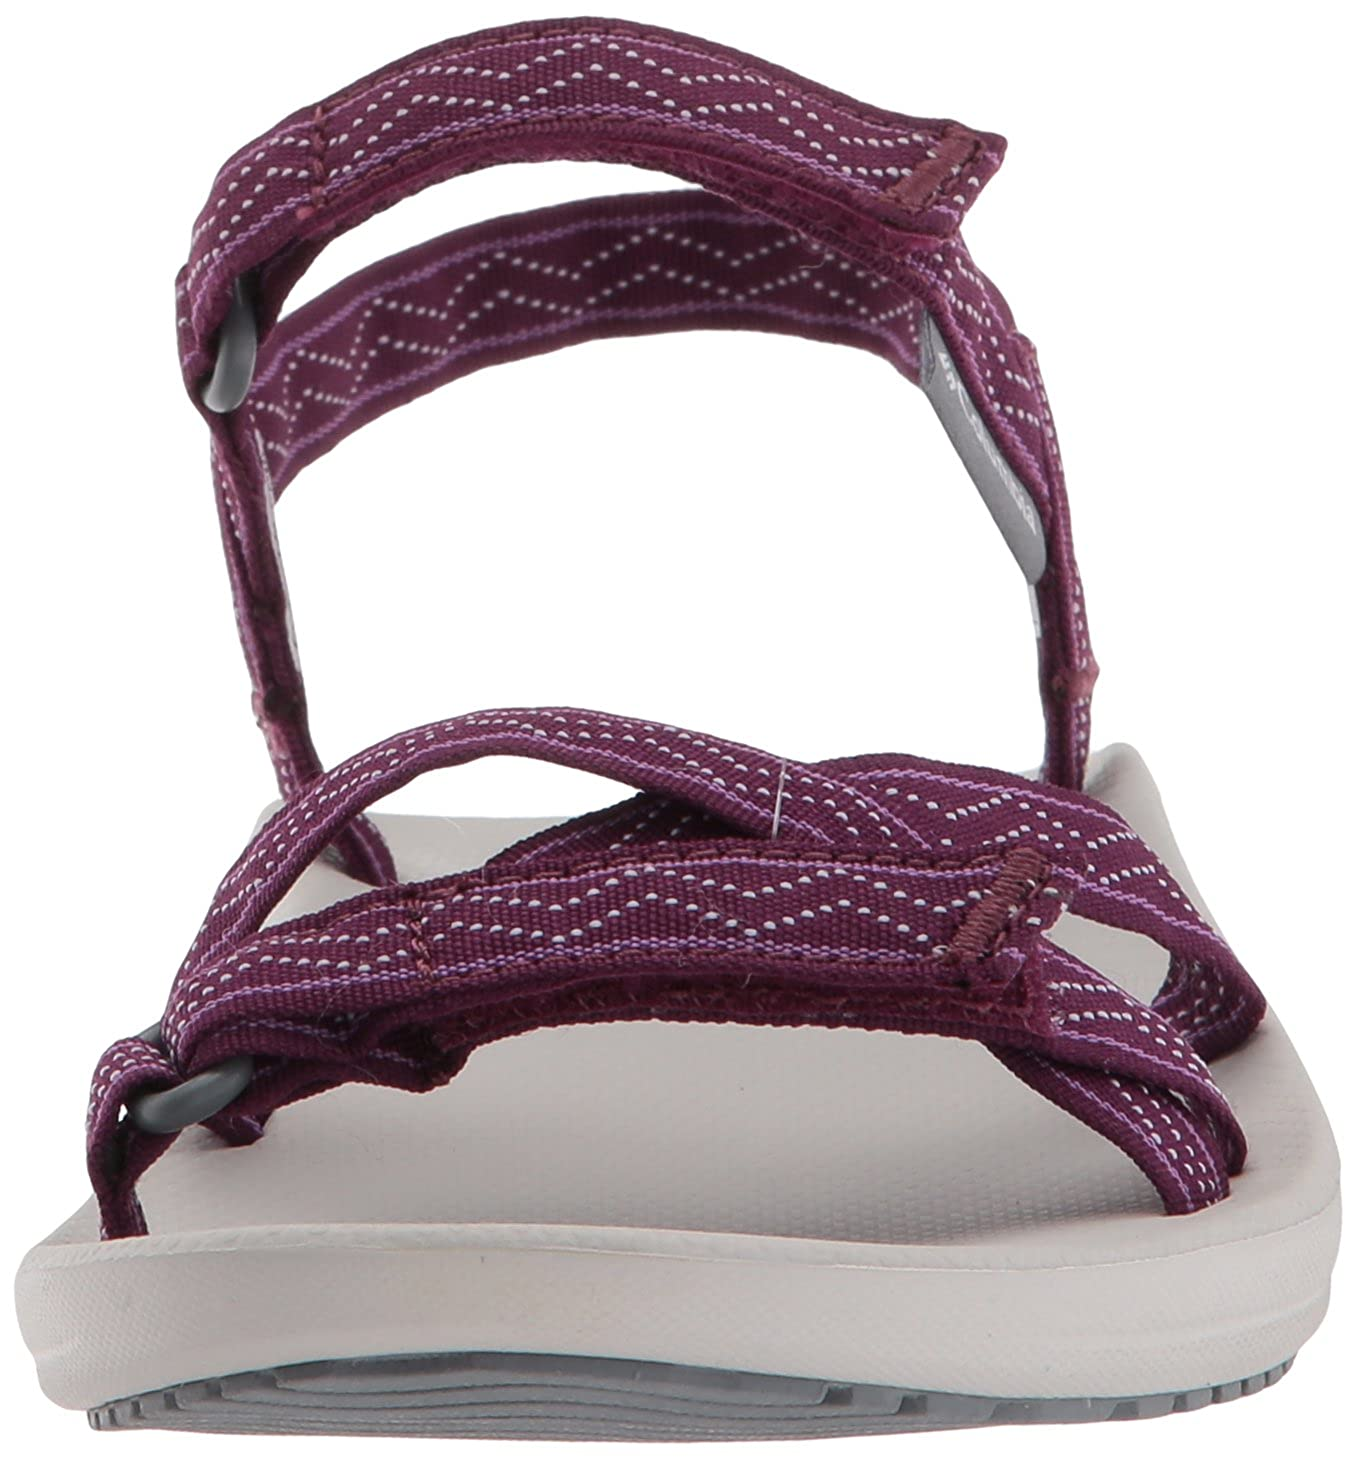 Columbia Wave Train Damens Sandales Damens Train Dark Raspberry/Weiß Schuhgröße US 9 | 40 2018 Sandalen - 029e7a